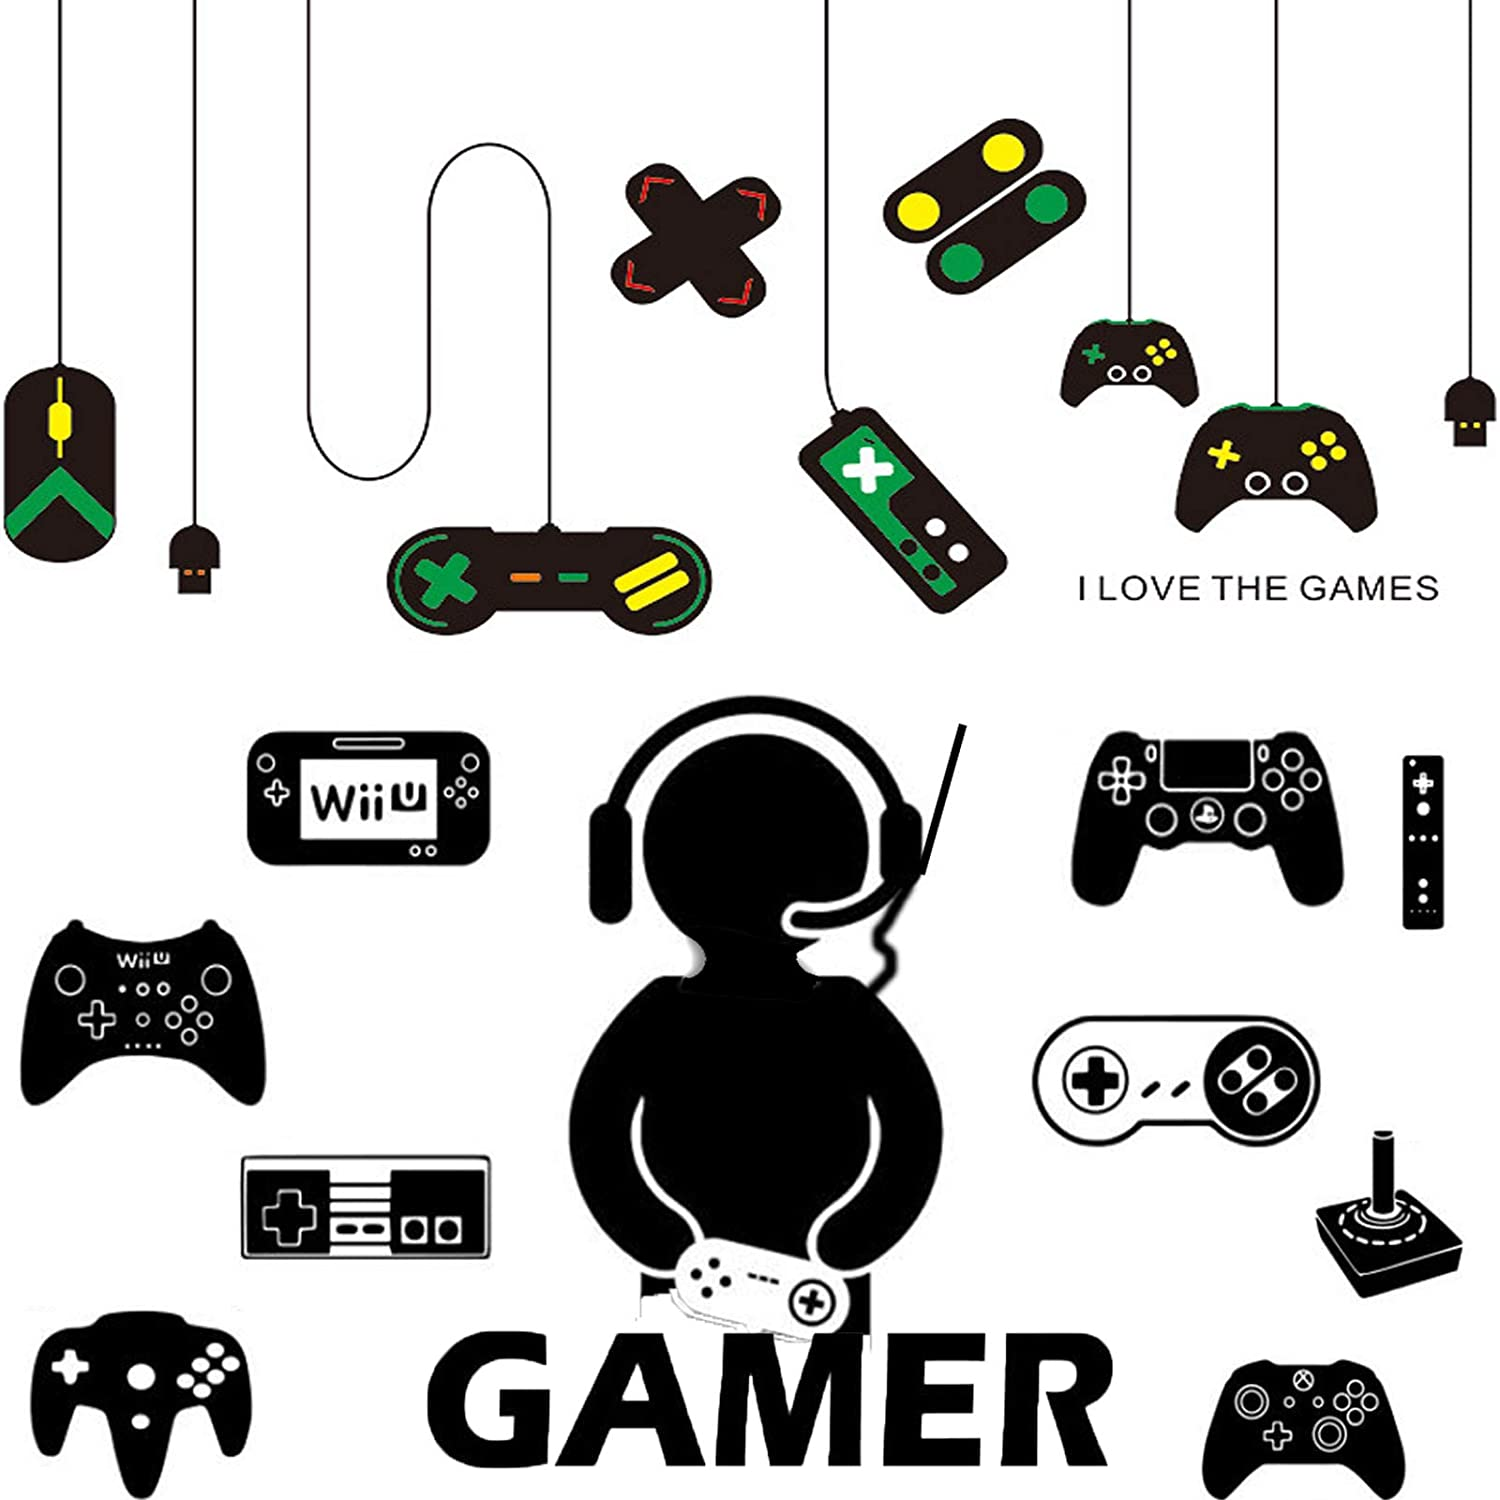 Tenare 3 Sheets Game Room Wall Stickers Game Controller Wall Stickers Game Boy Decal Vinyl Wallpapers for Boys Kids Home Playroom Bedroom Decoration (Black, Multi-Color)